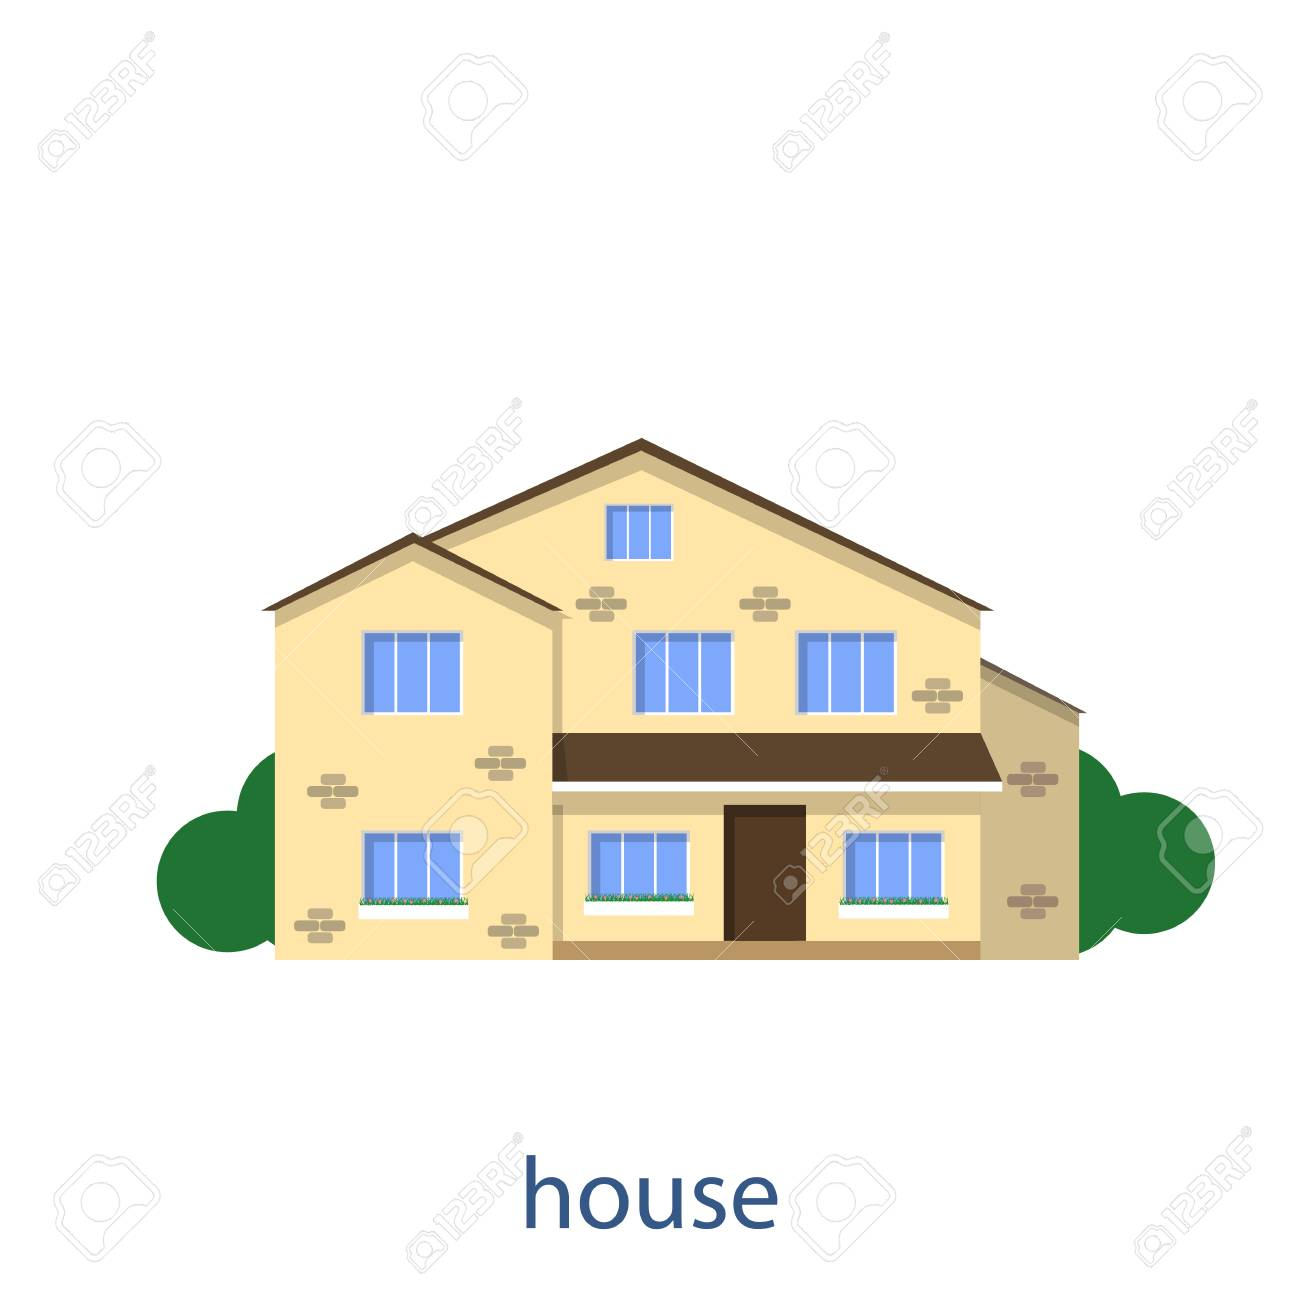 Flat Illustration Vector Design House Front View Royalty Free ...